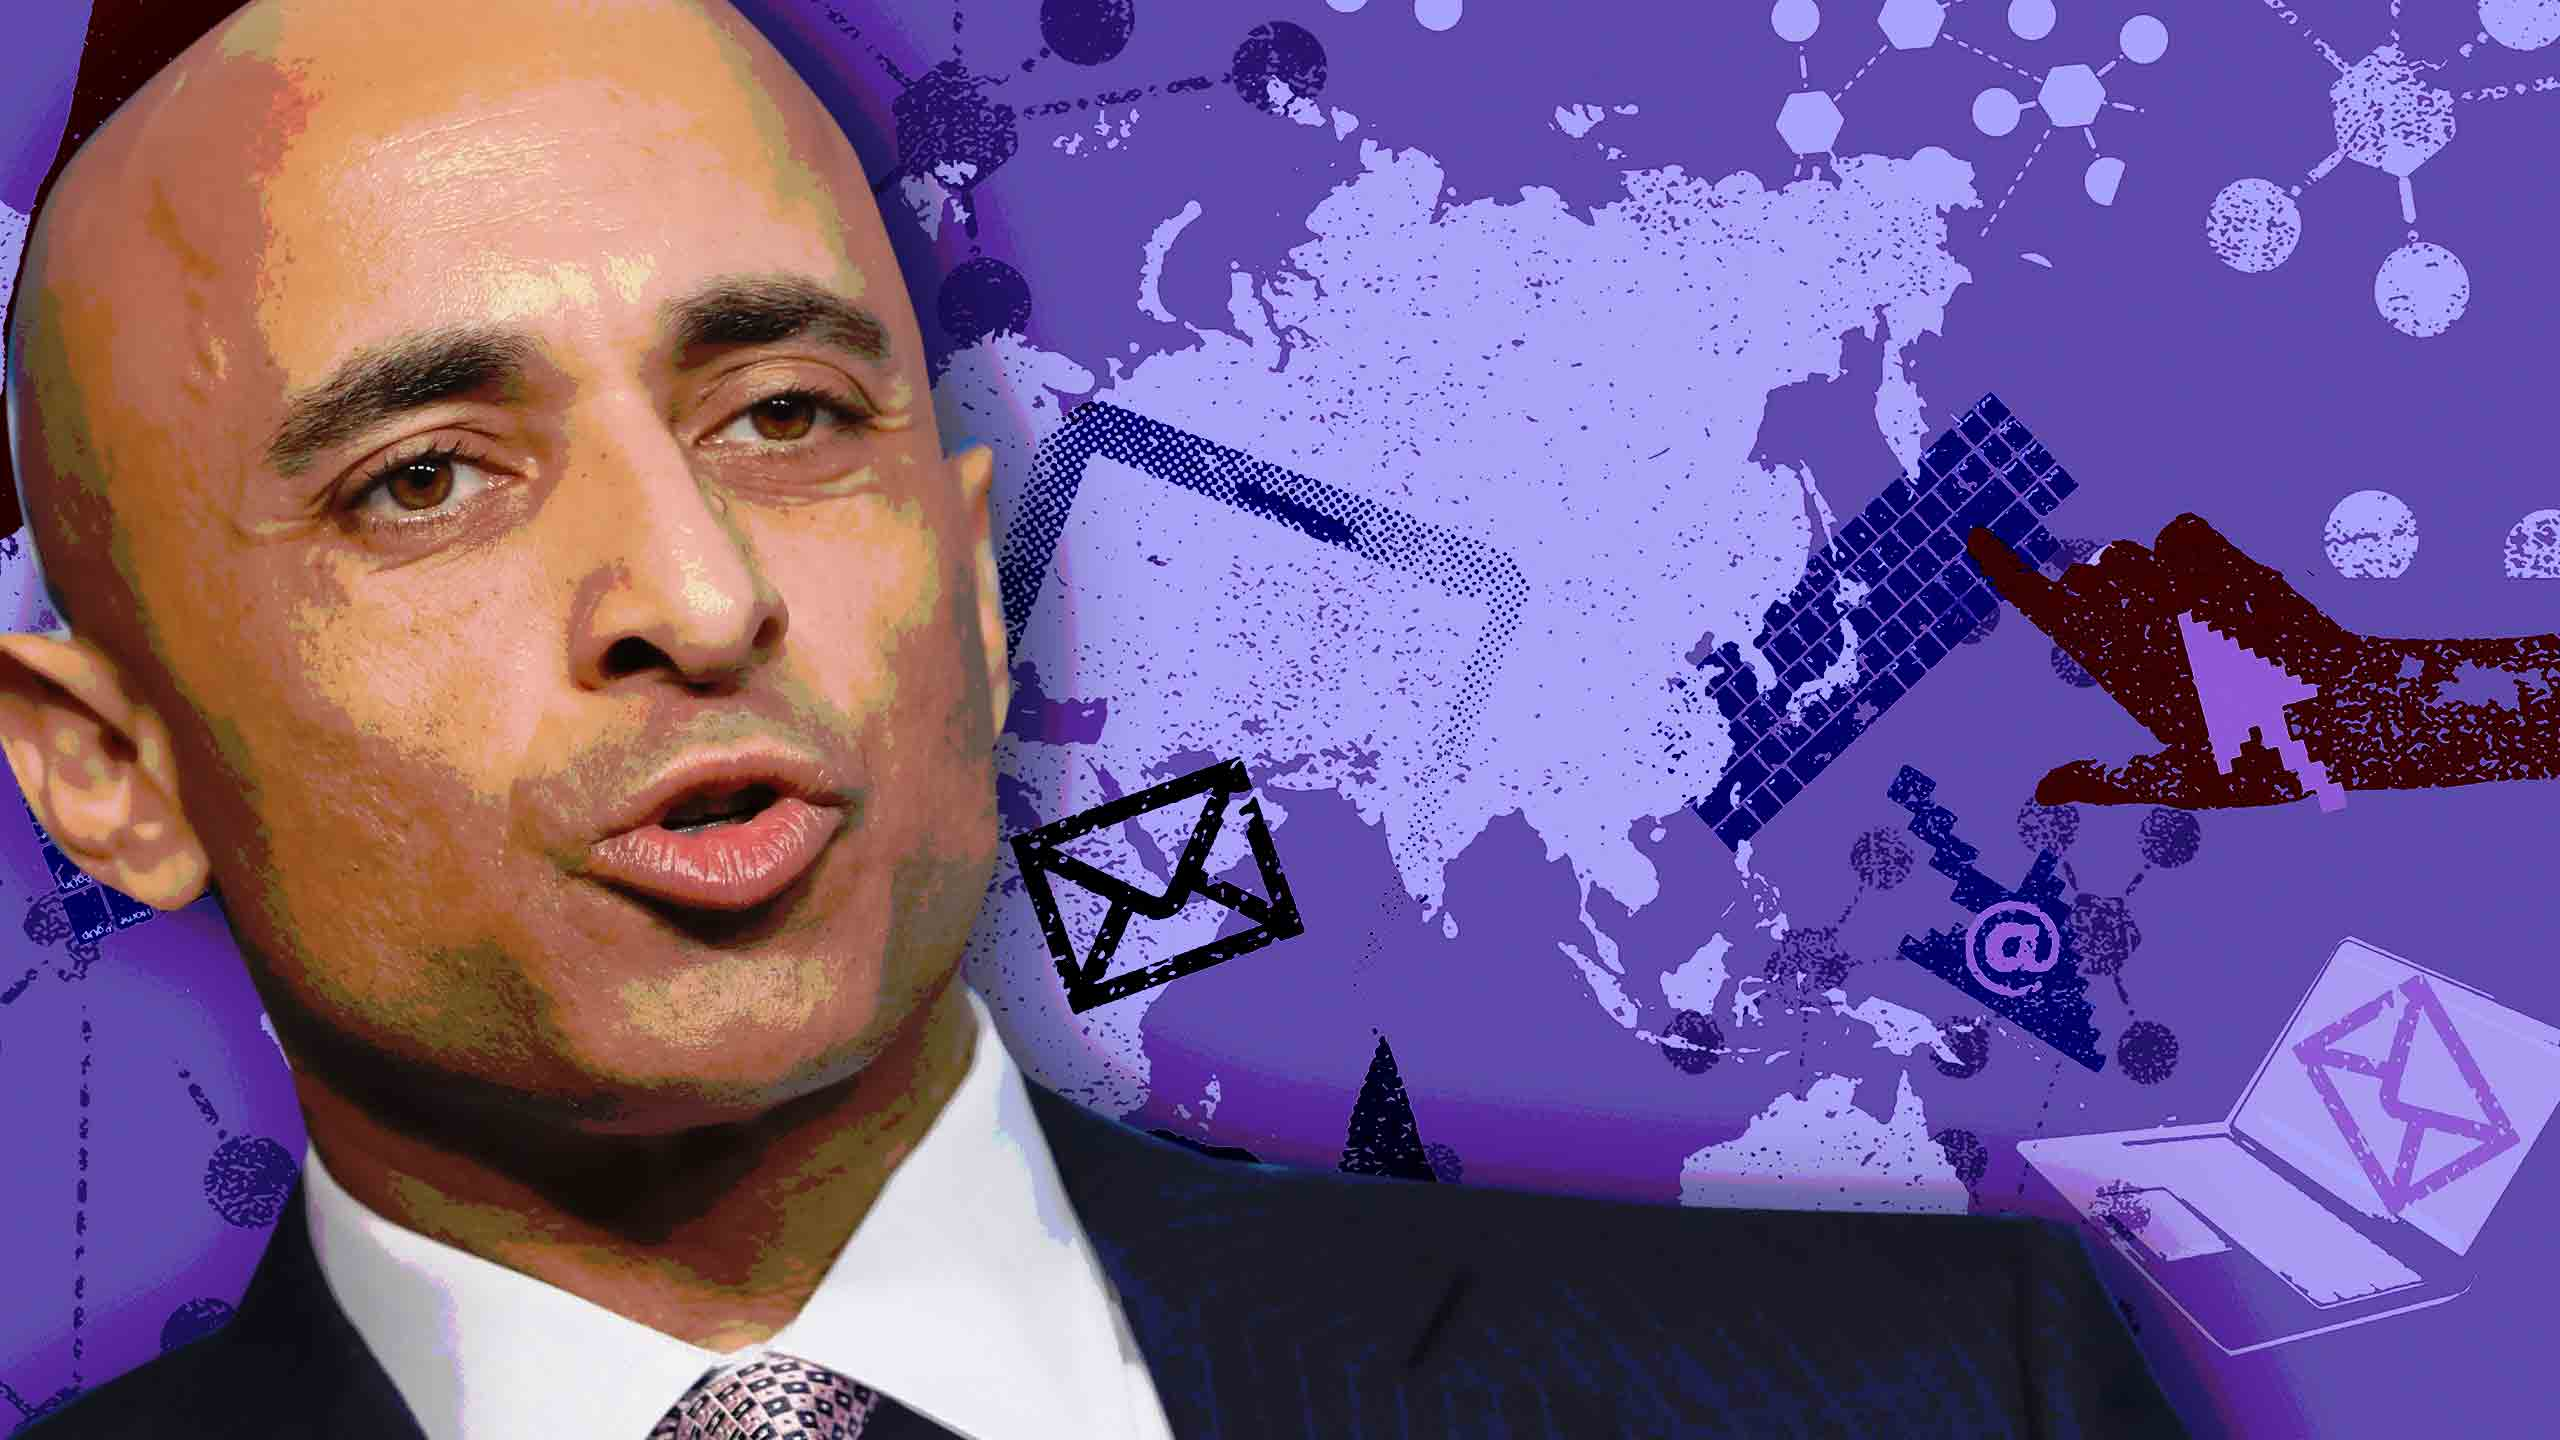 Food for thought: UAE ambassador's hacked mails feed crucial policy debates